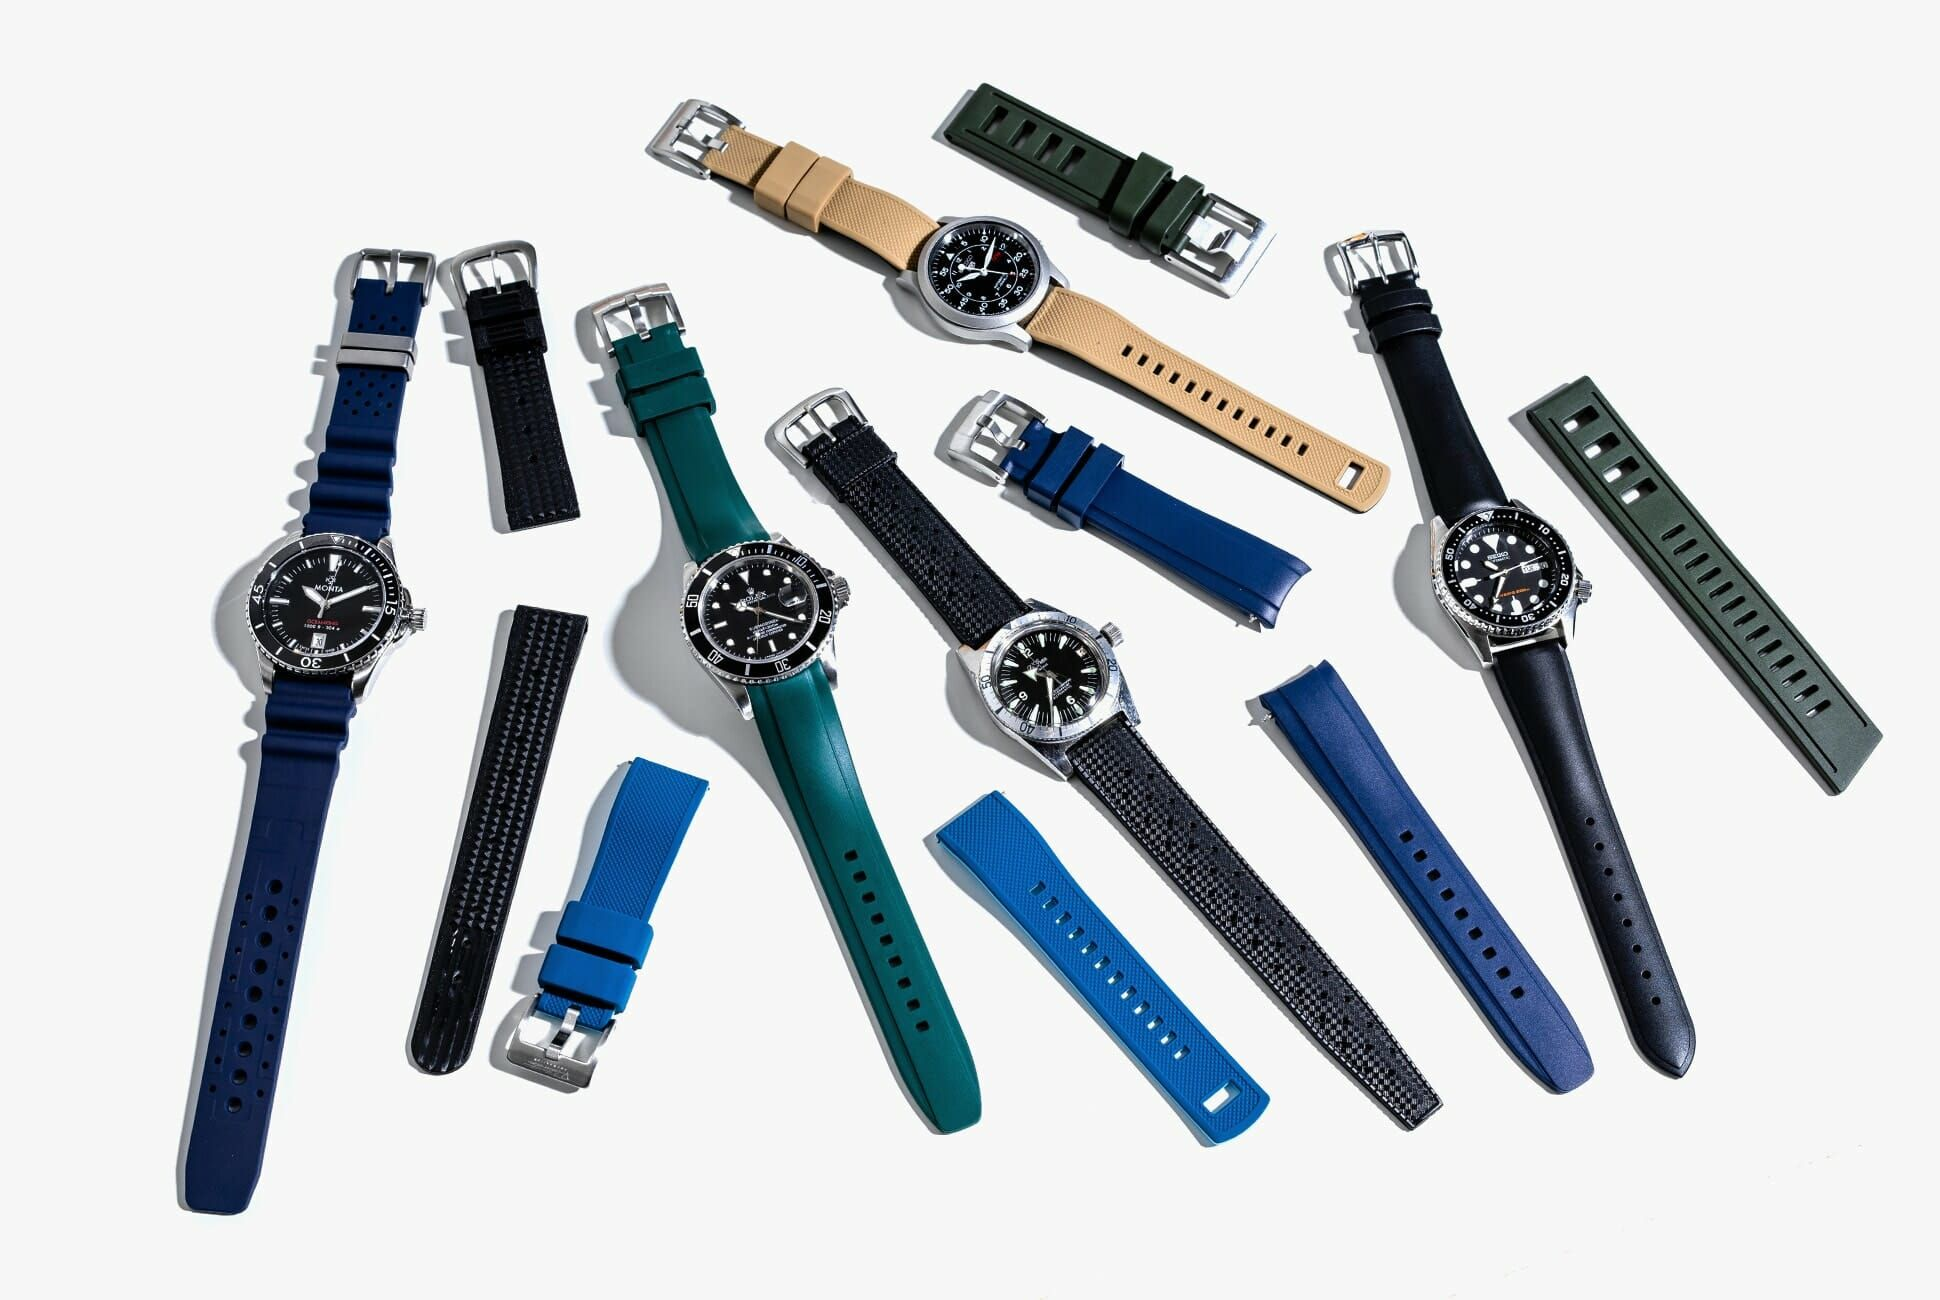 Sports watches on rubber straps